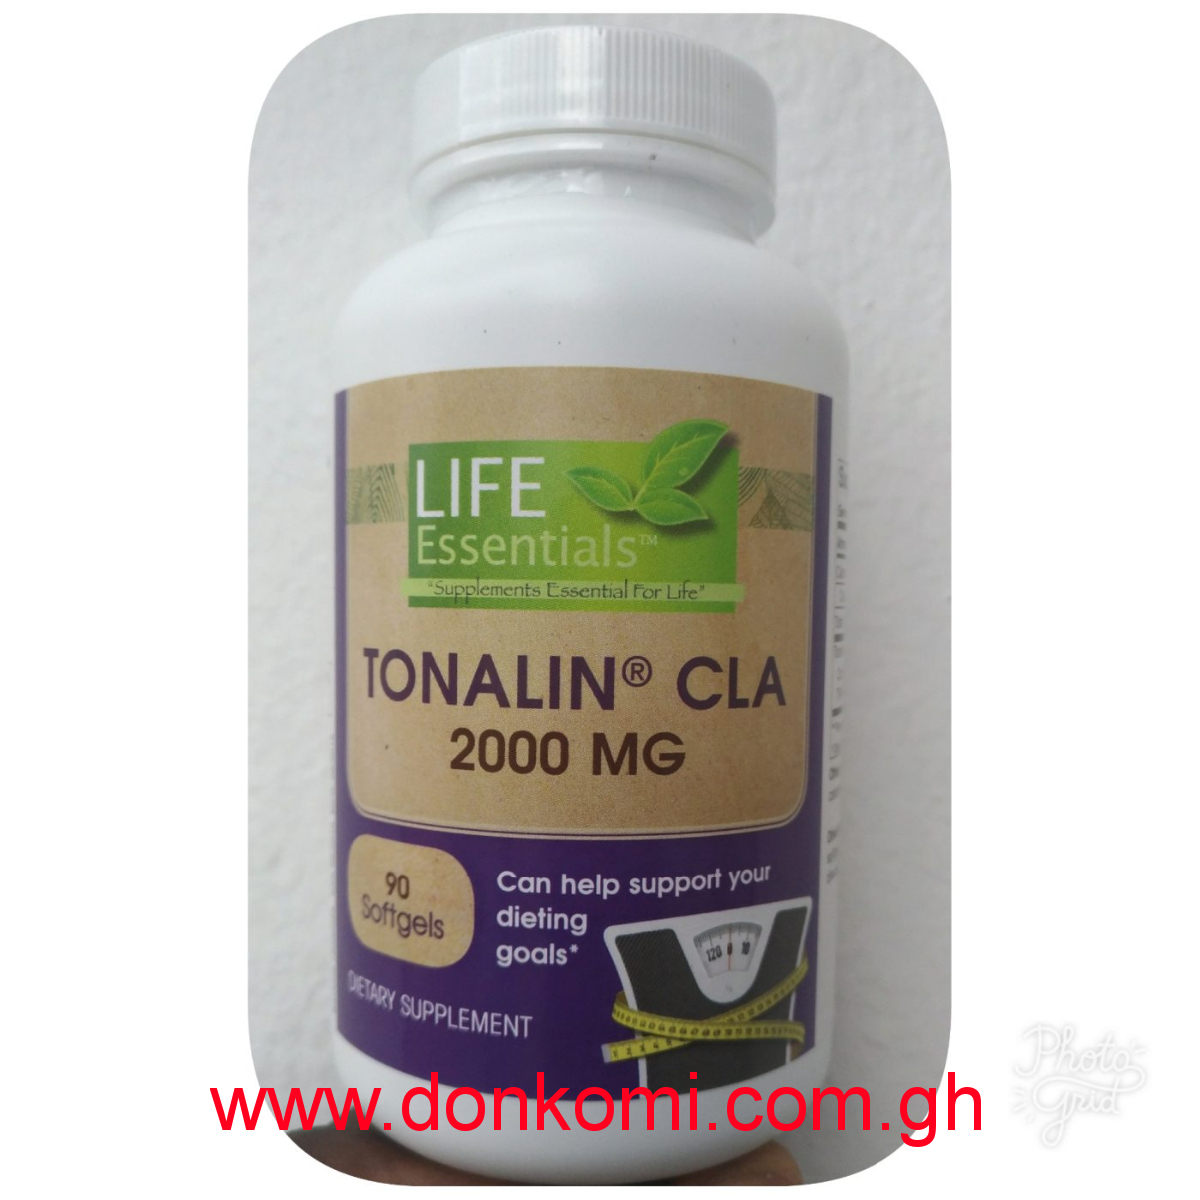 Tonalin CLA Weight Loss